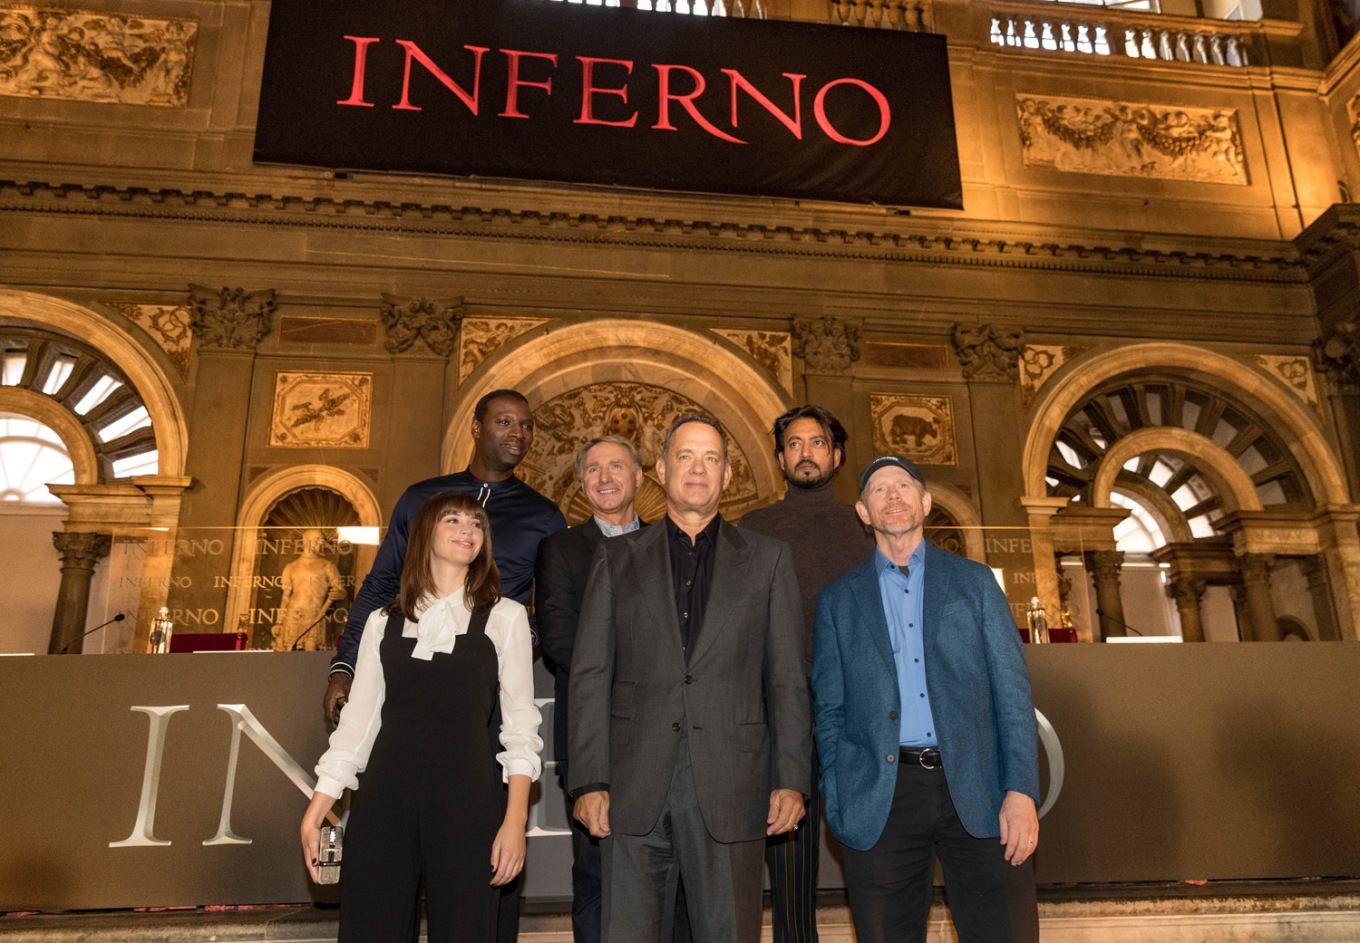 INFERNO - Press Conference and Photo Call - Florence, Italy